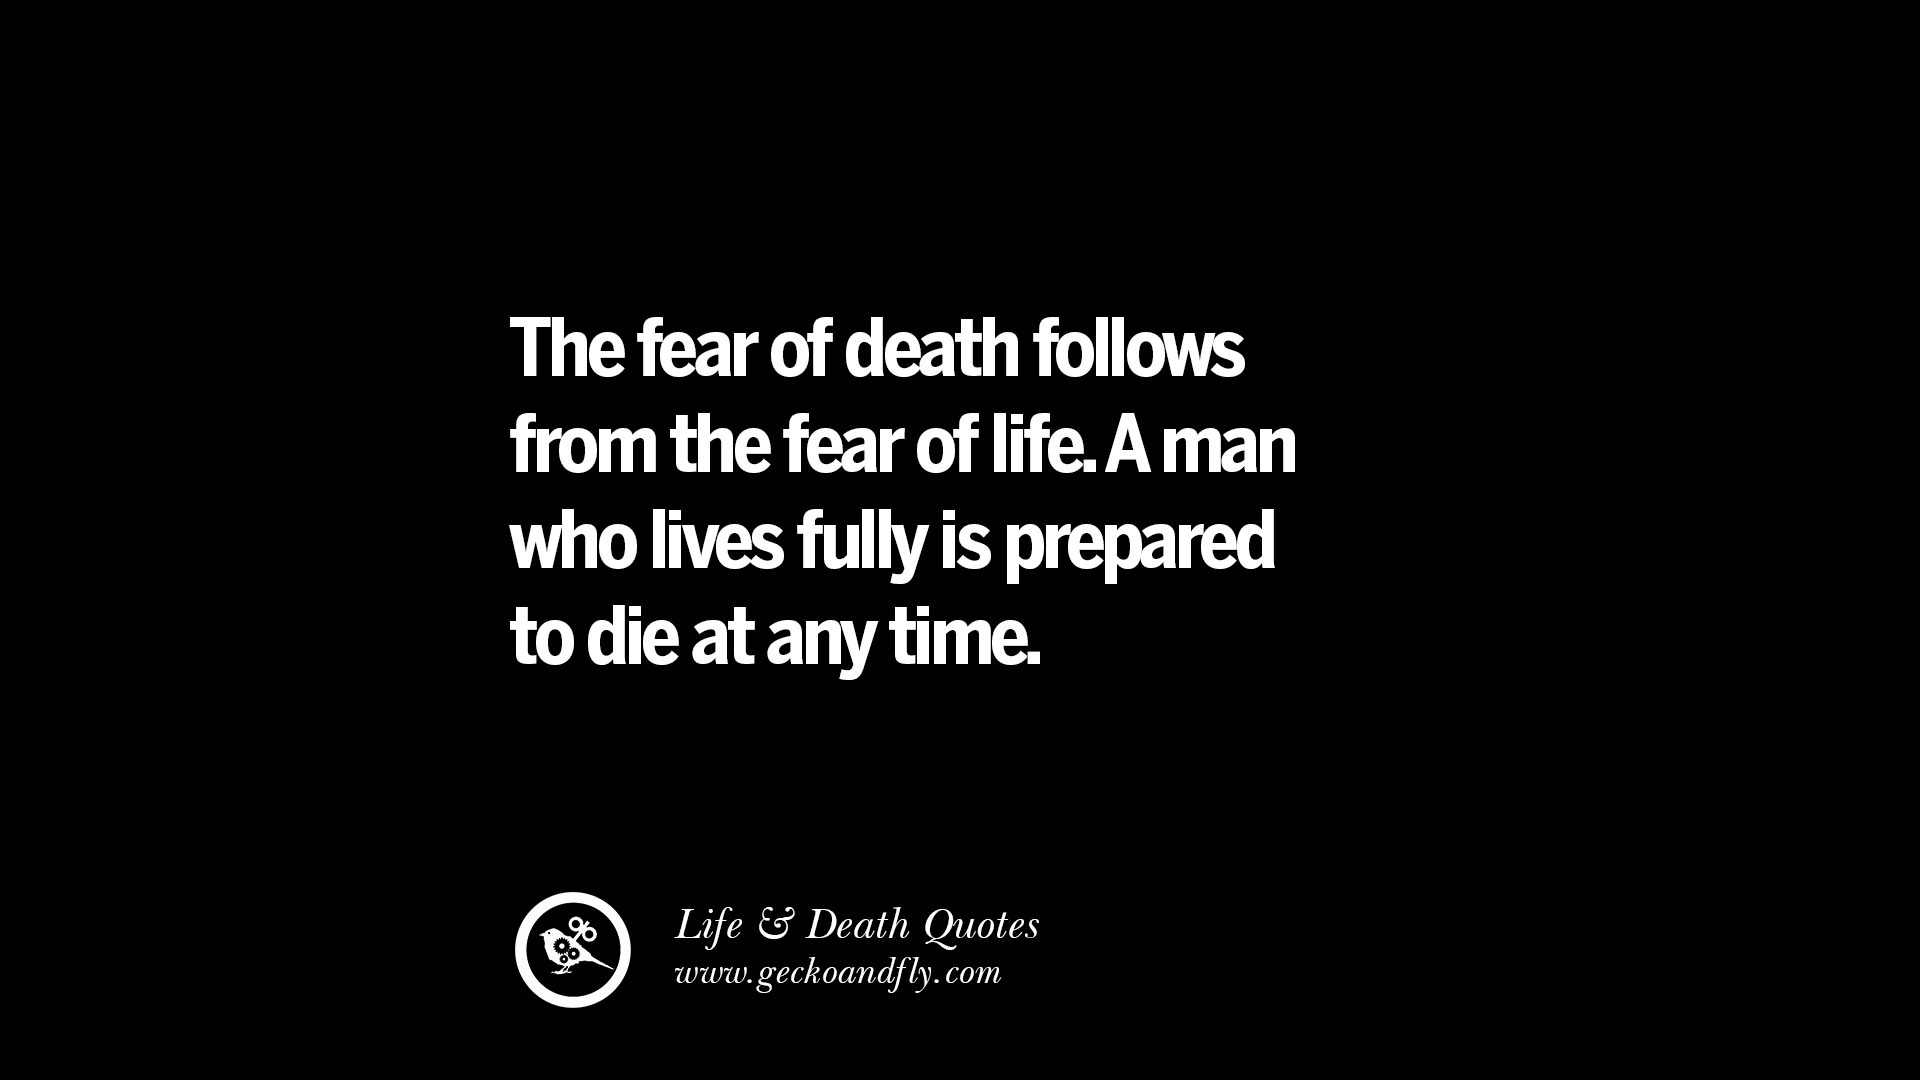 Highlander Quotes 20 Inspirational Quotes On Life Death And Losing Someone